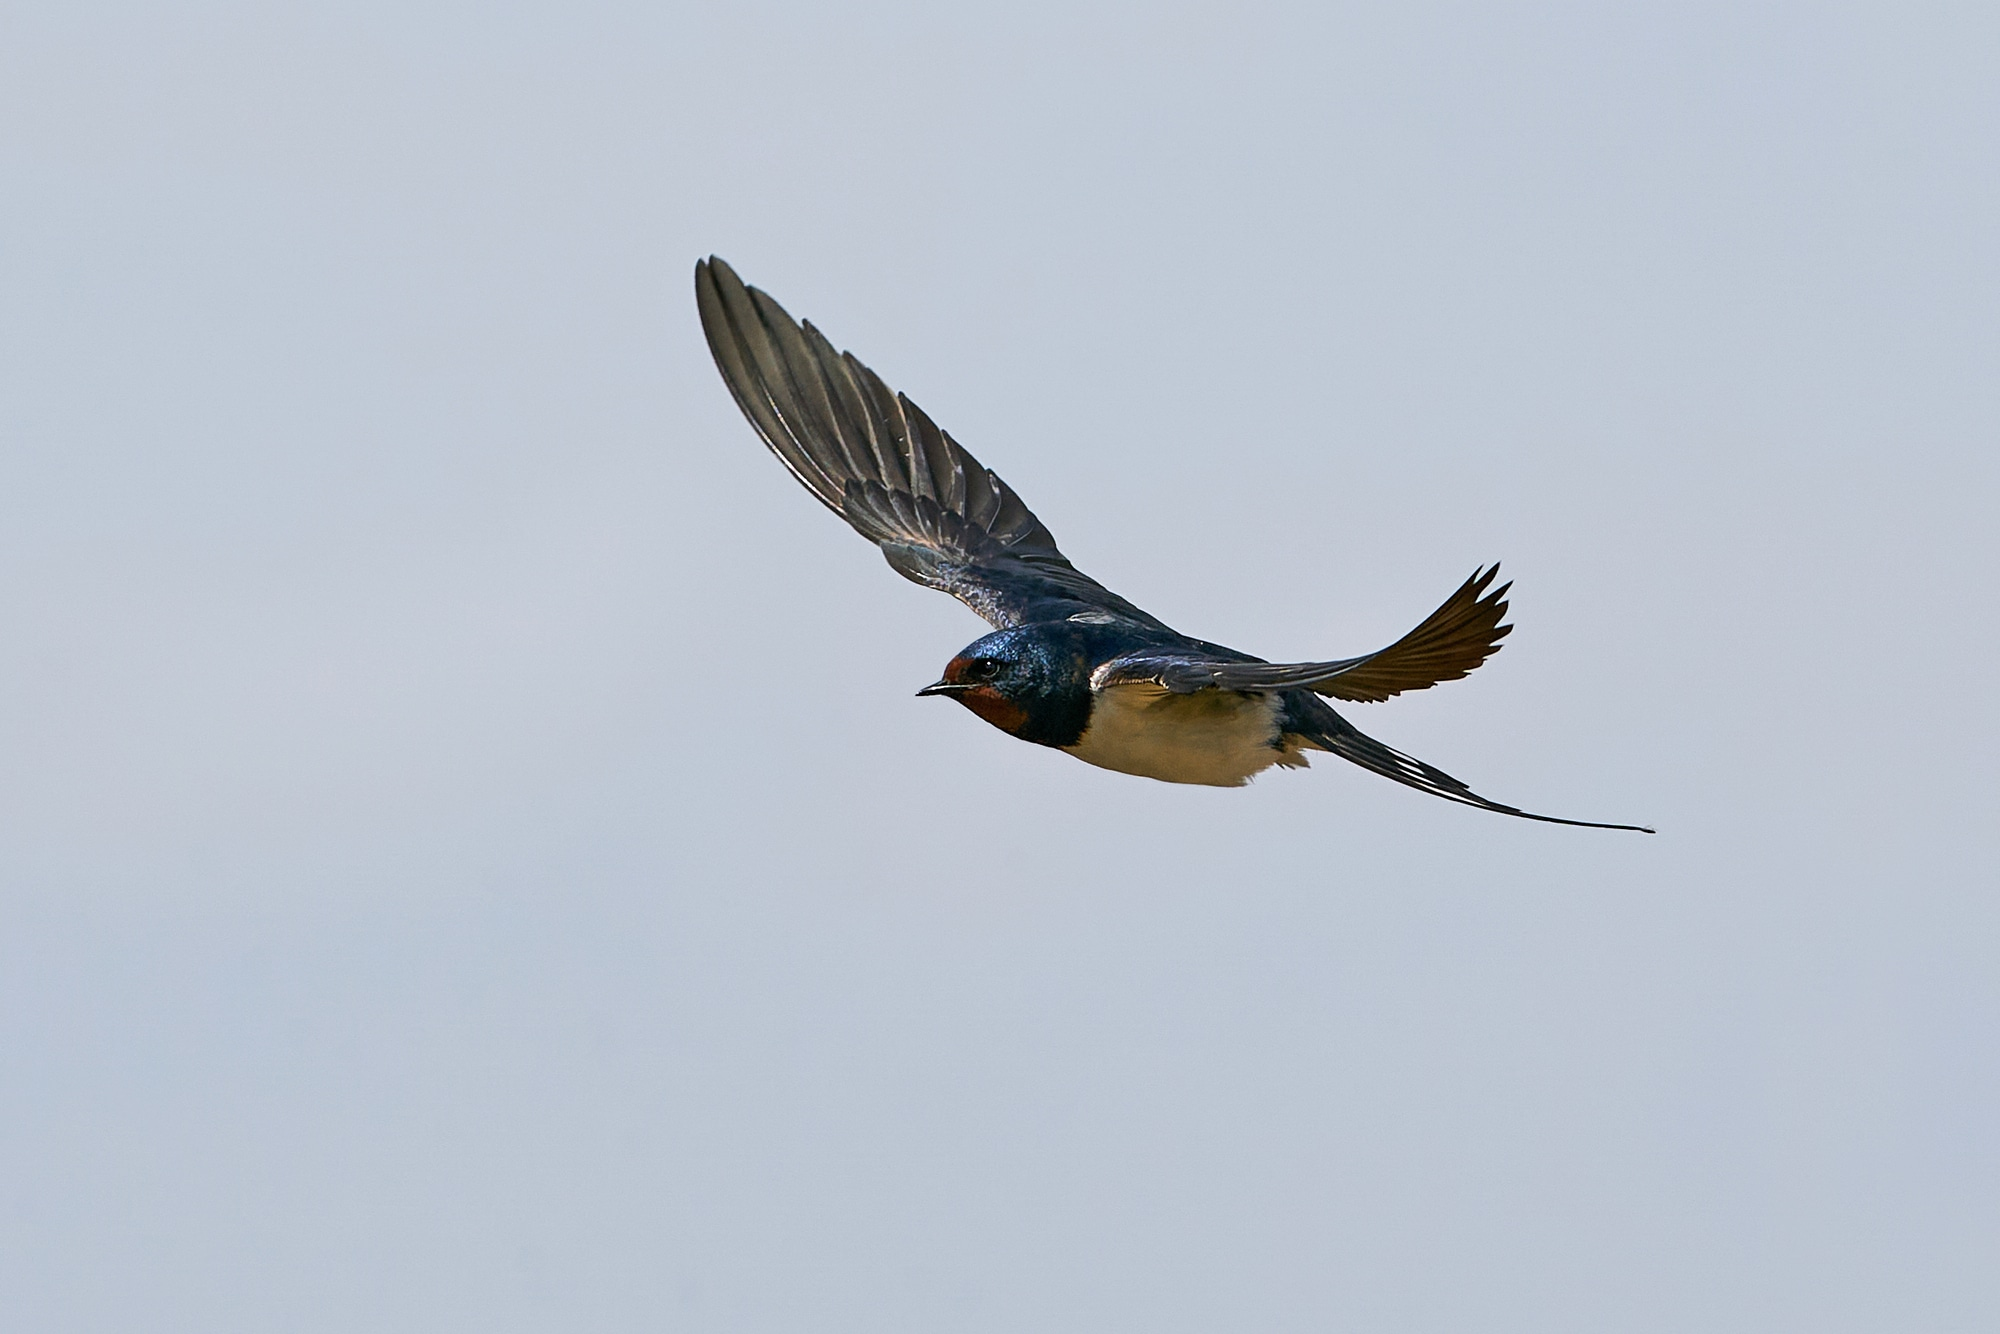 Barn swallow in flight with blue skies in the background